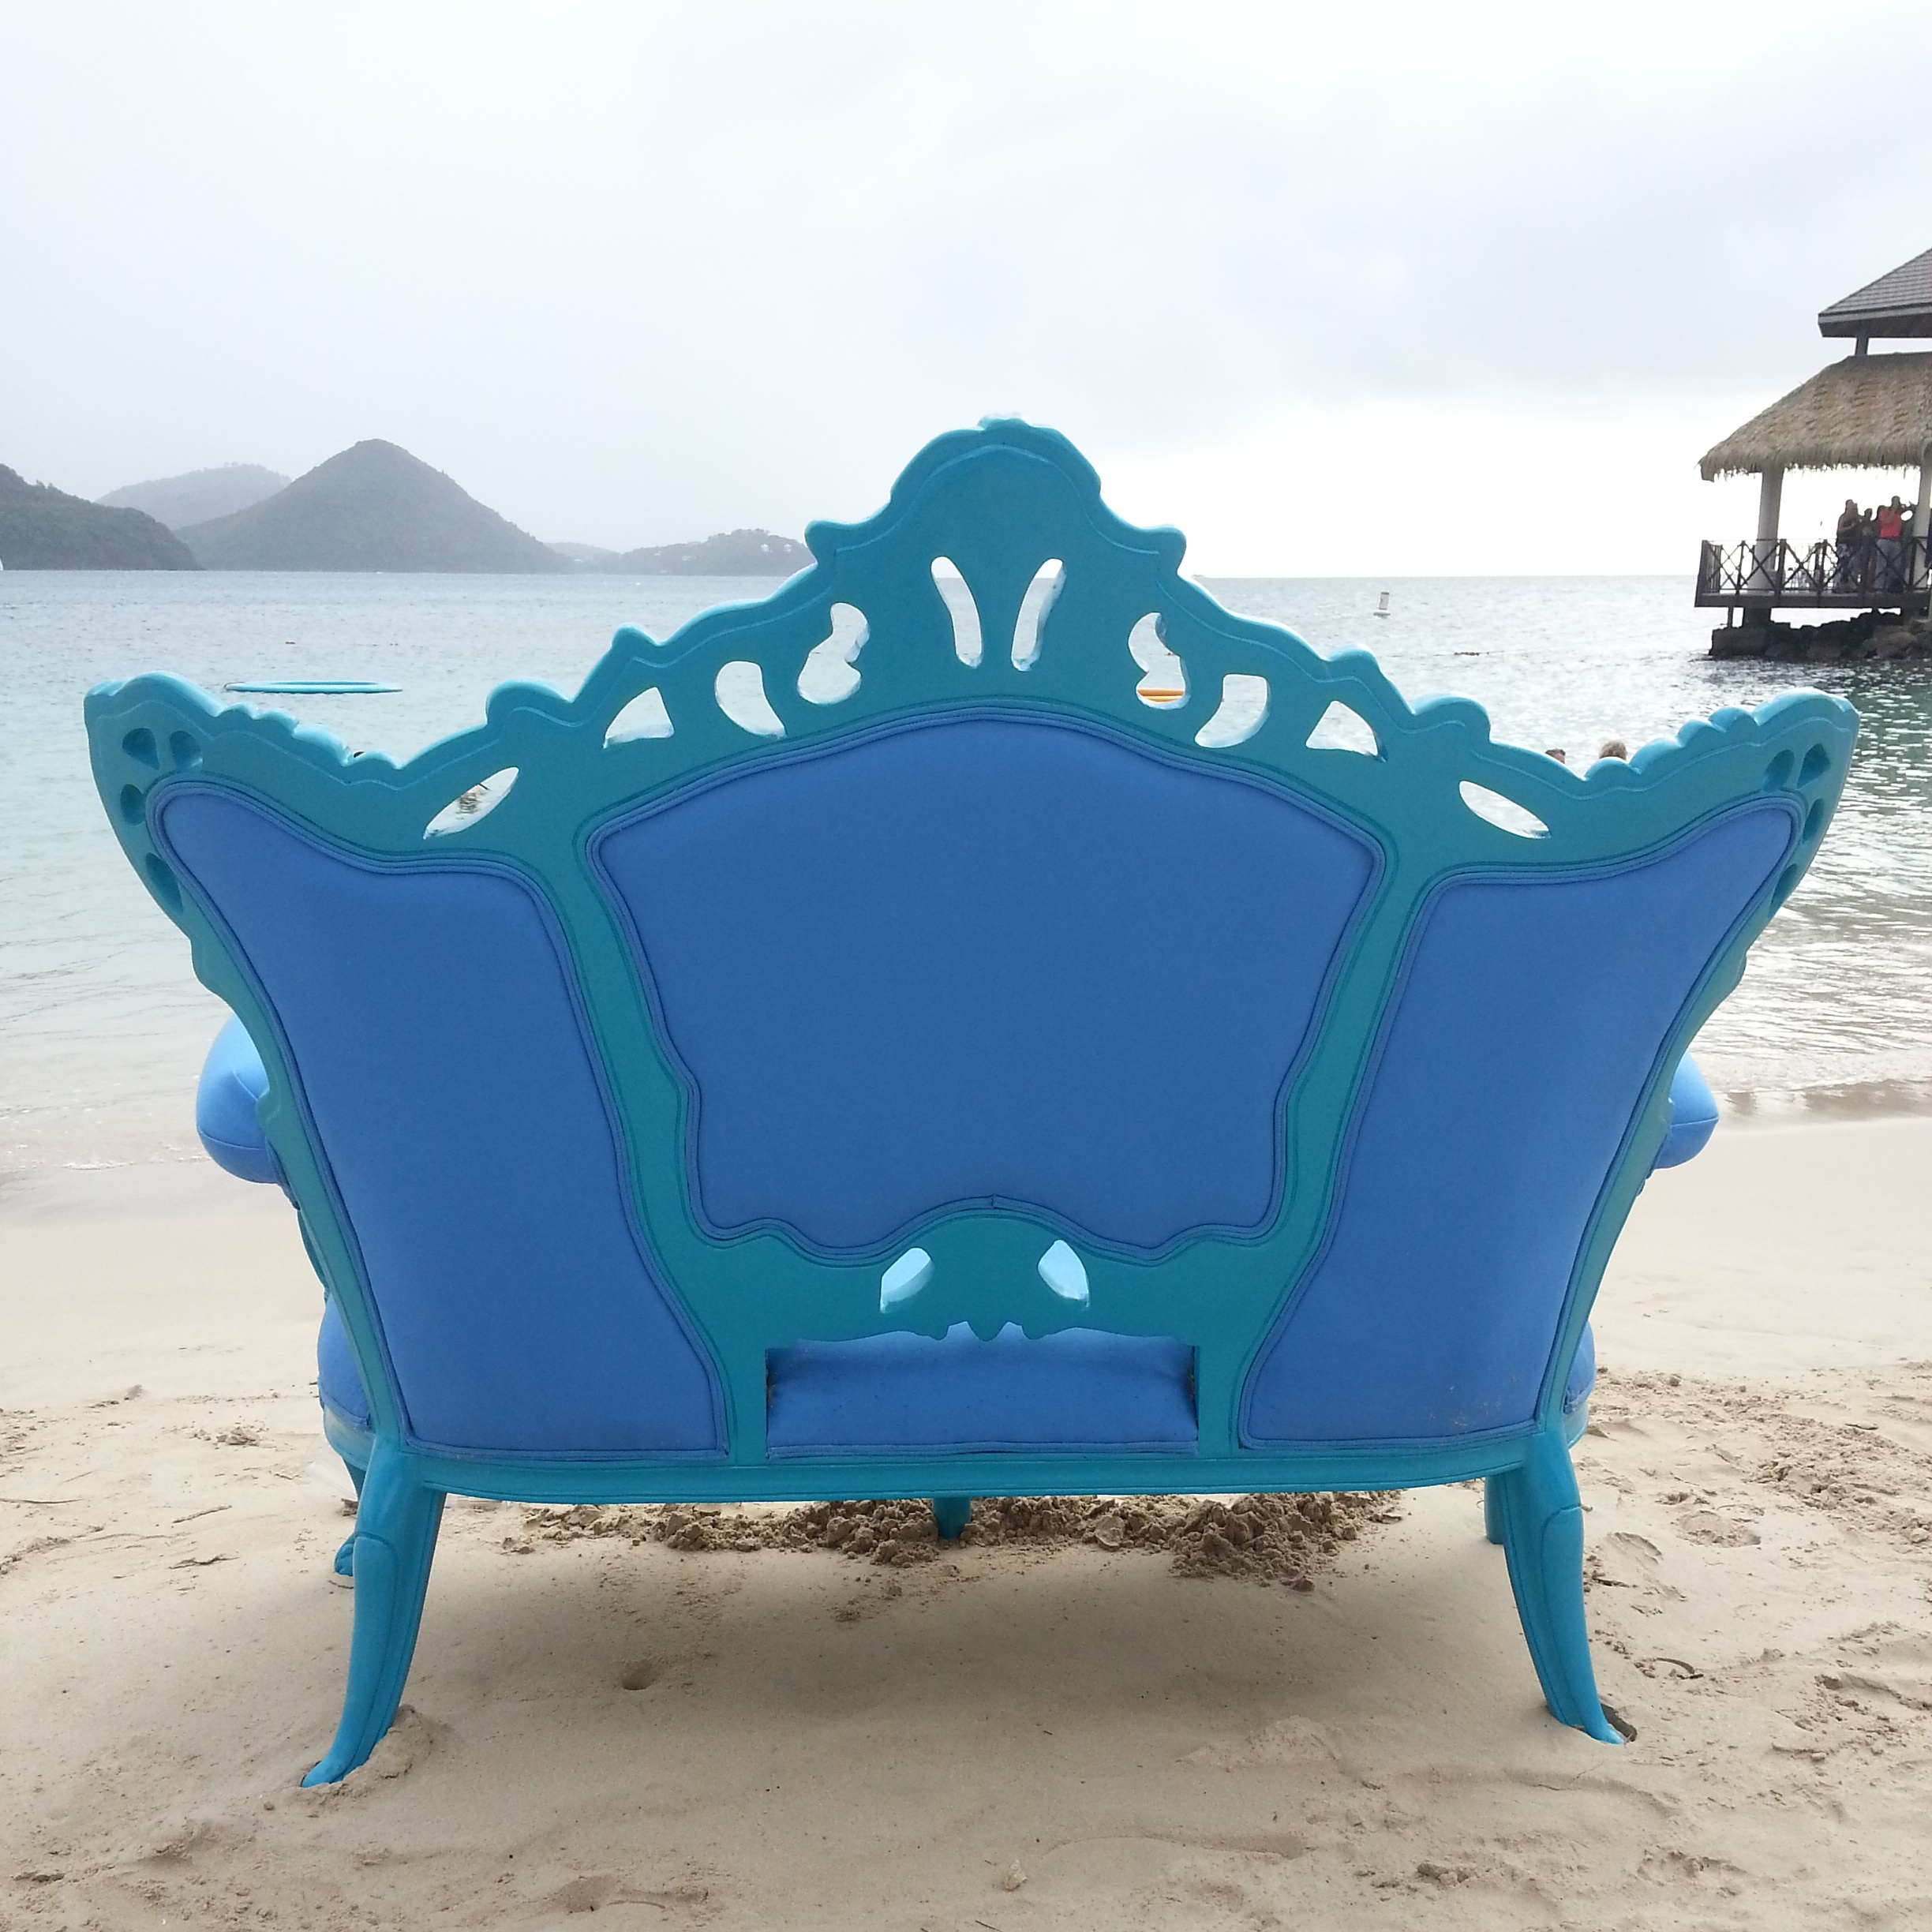 St. Lucia Sandels Resort blue chair  | Lorin Marie Photography